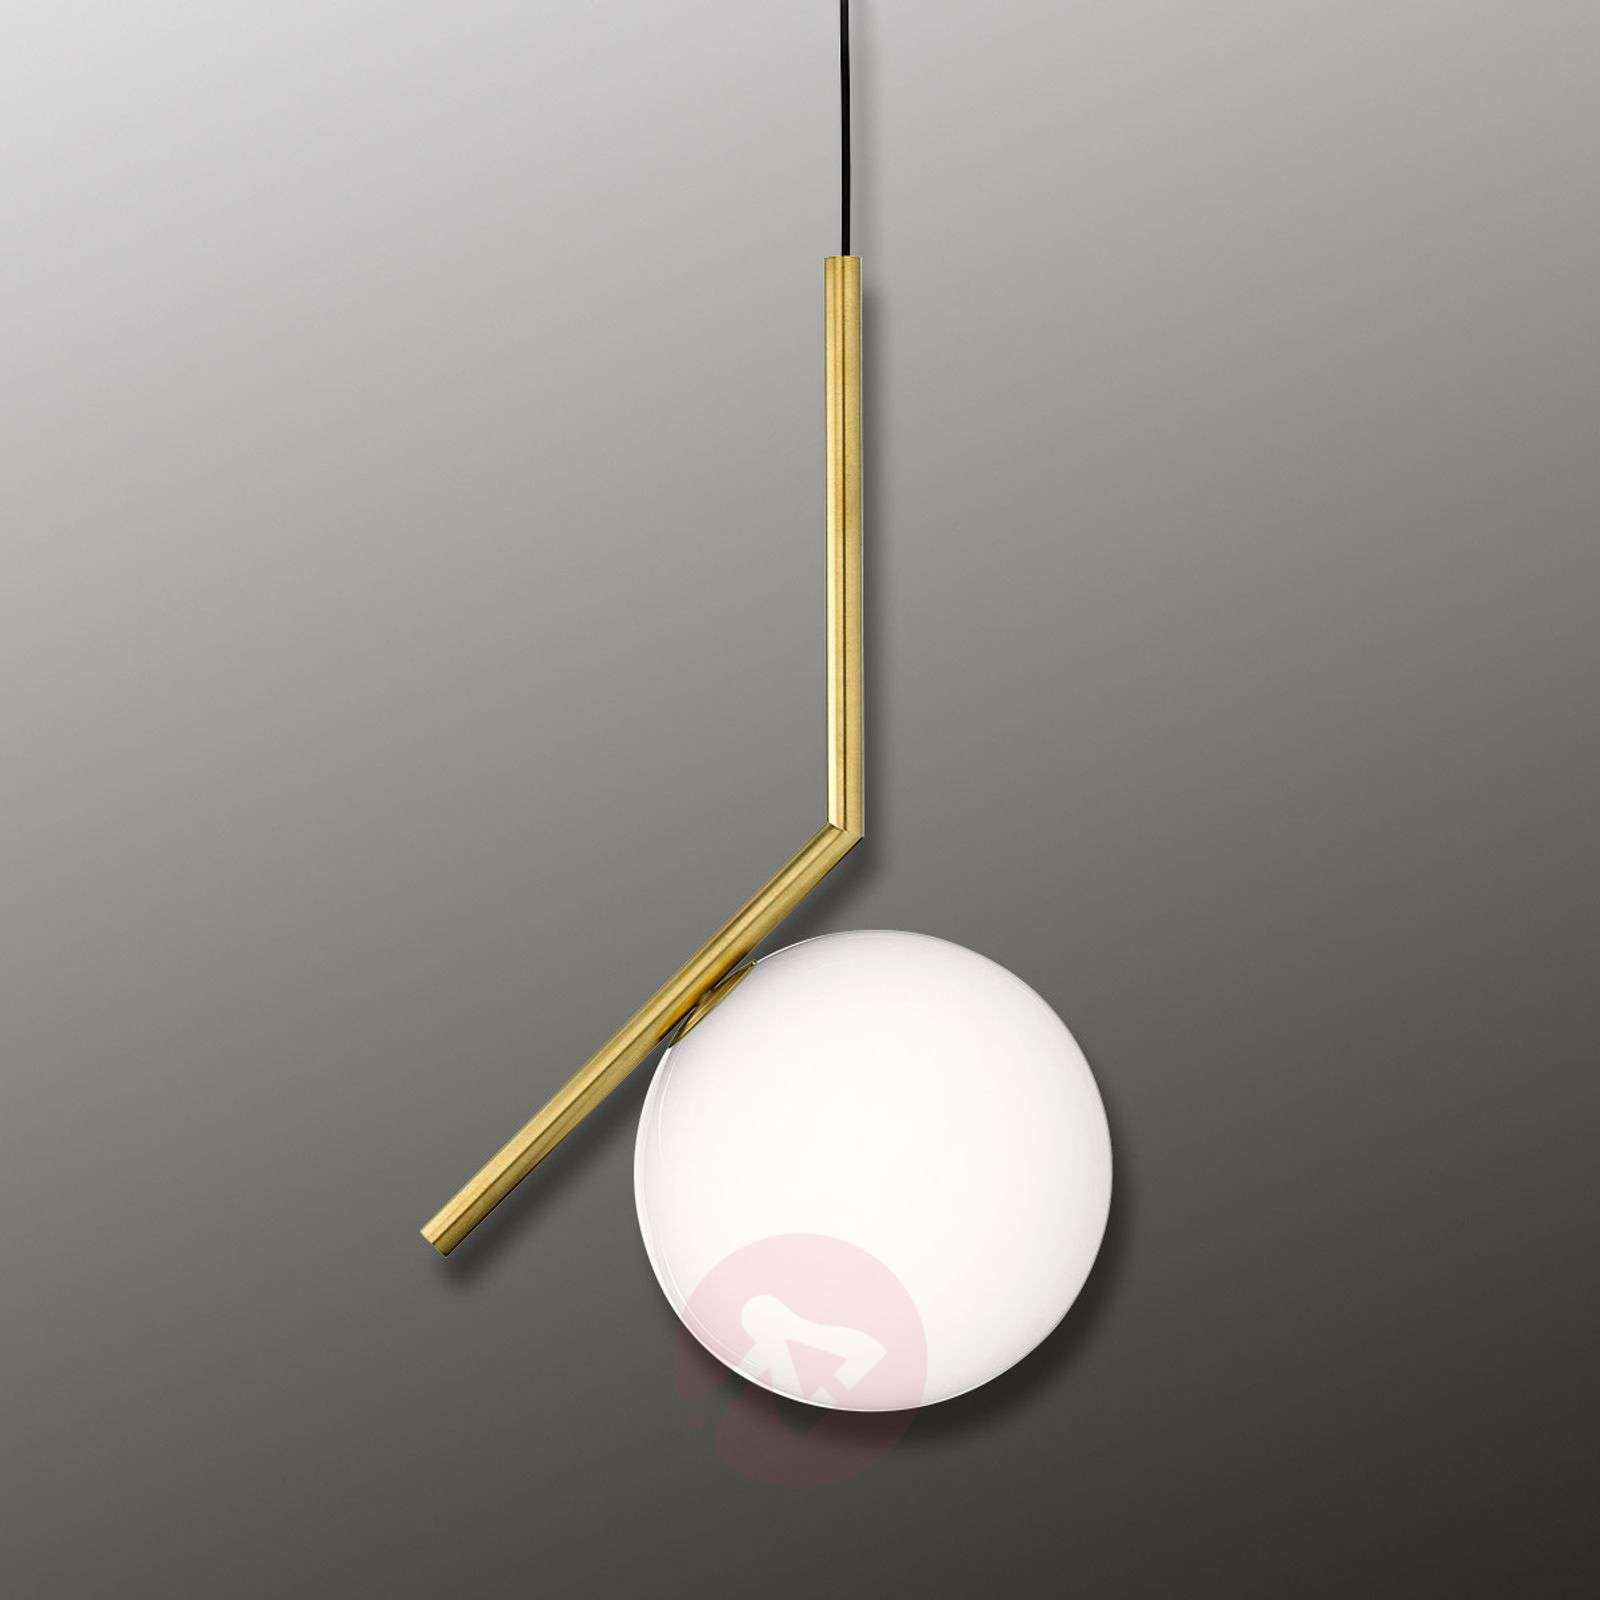 new style 56dbb 4a2b5 IC S1 Designer Pendant Lamp by FLOS